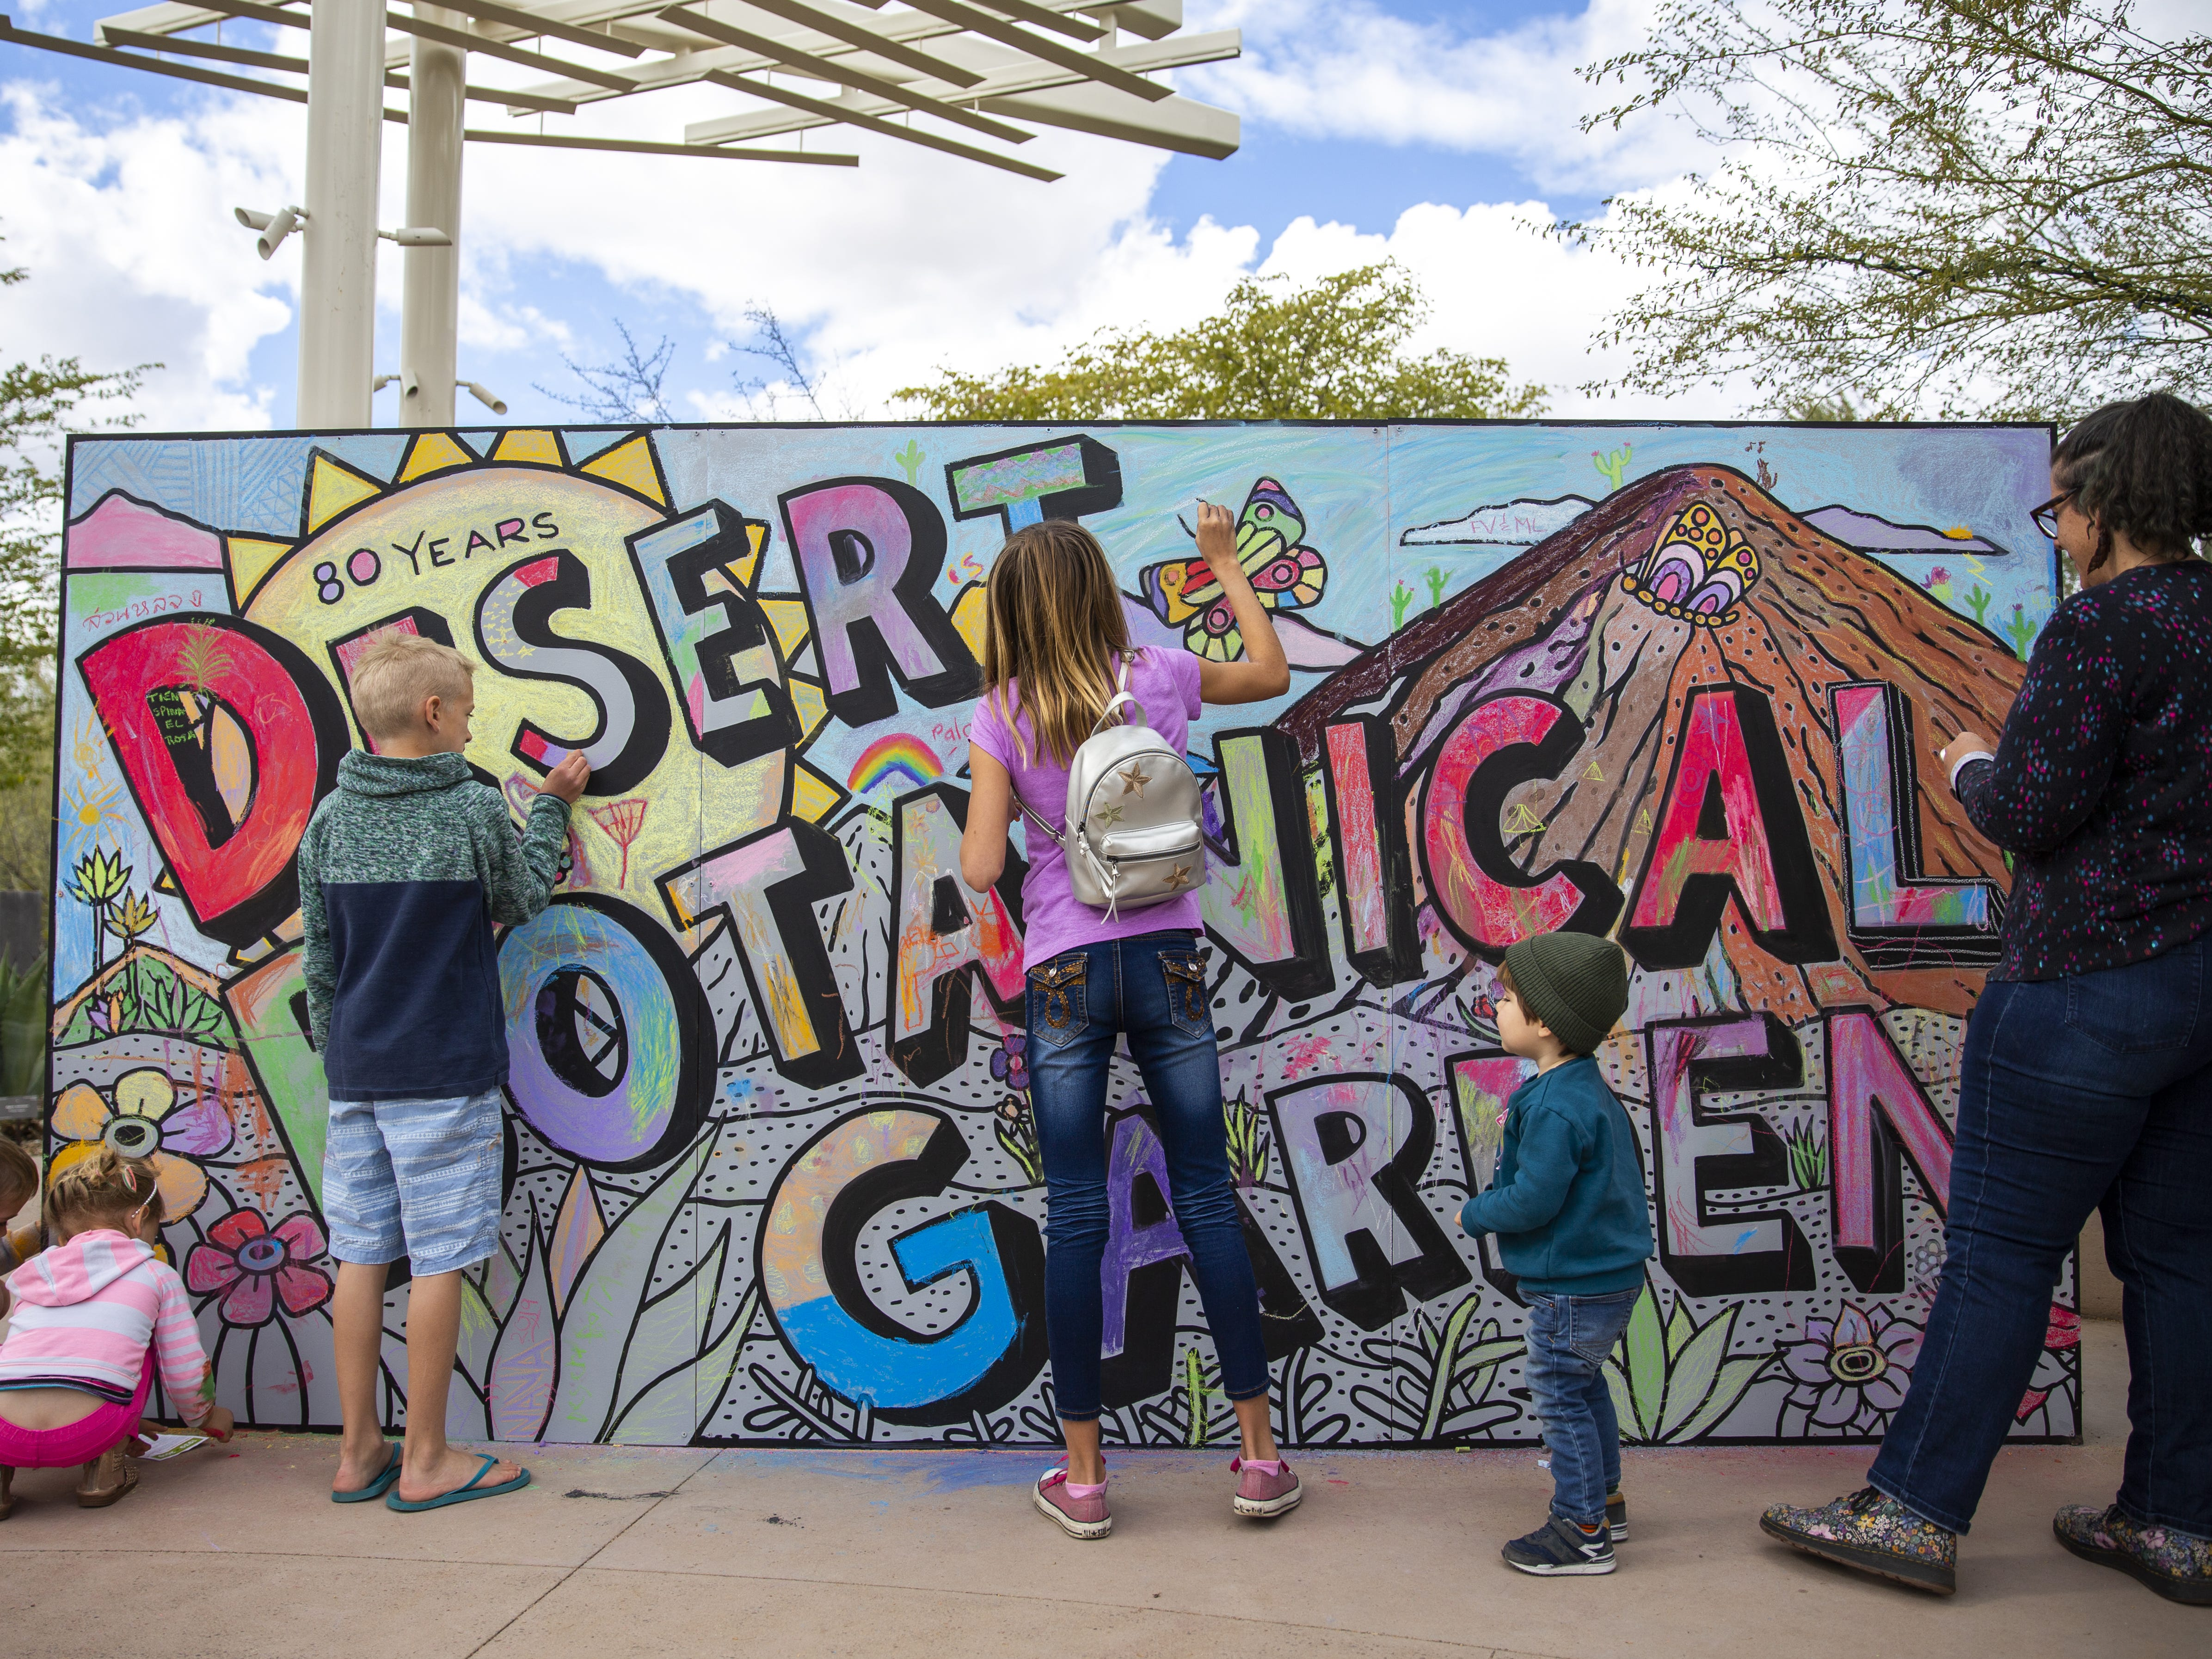 Photos: Desert Botanical Garden 80th Anniversary Celebration, 2019